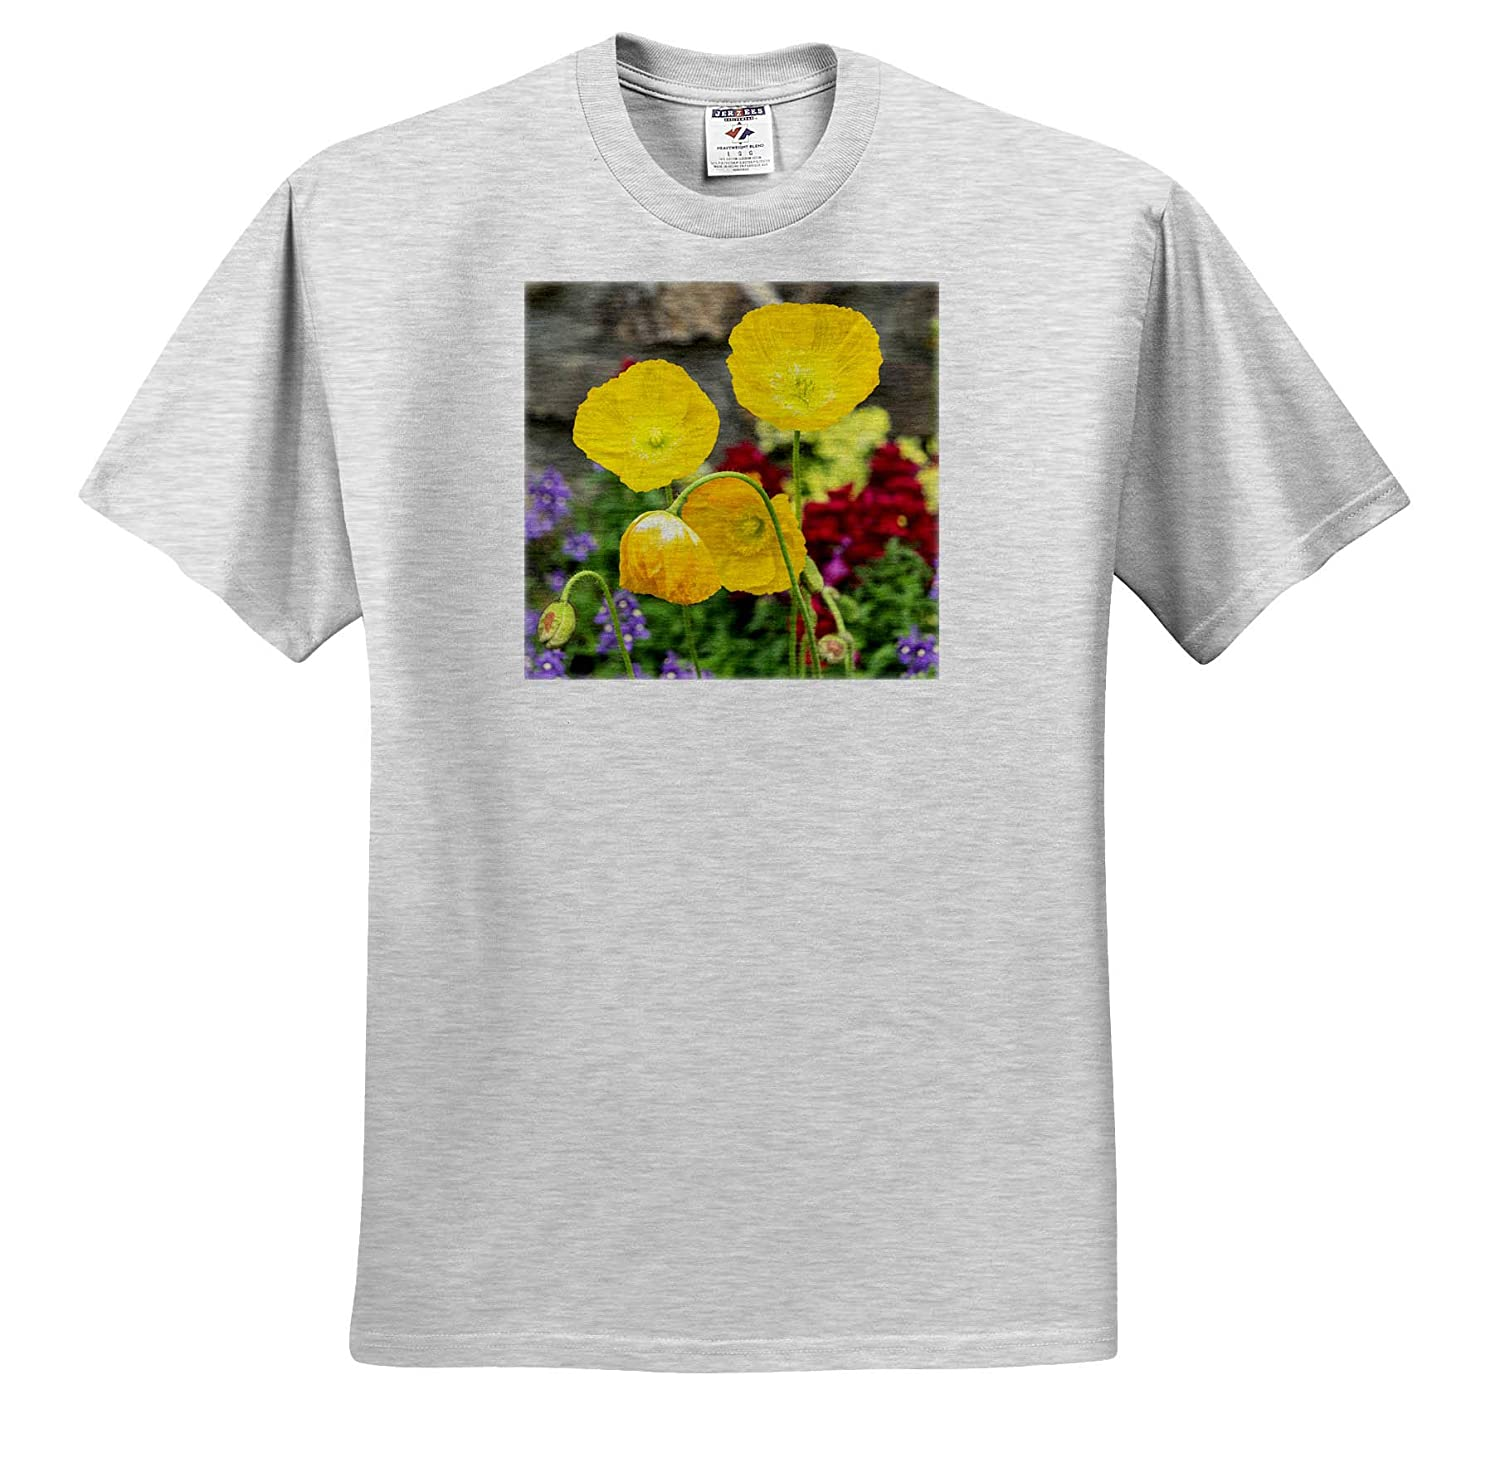 Flowers 3dRose Danita Delimont ts/_314996 Adult T-Shirt XL Iceland Poppy Pennsylvania USA